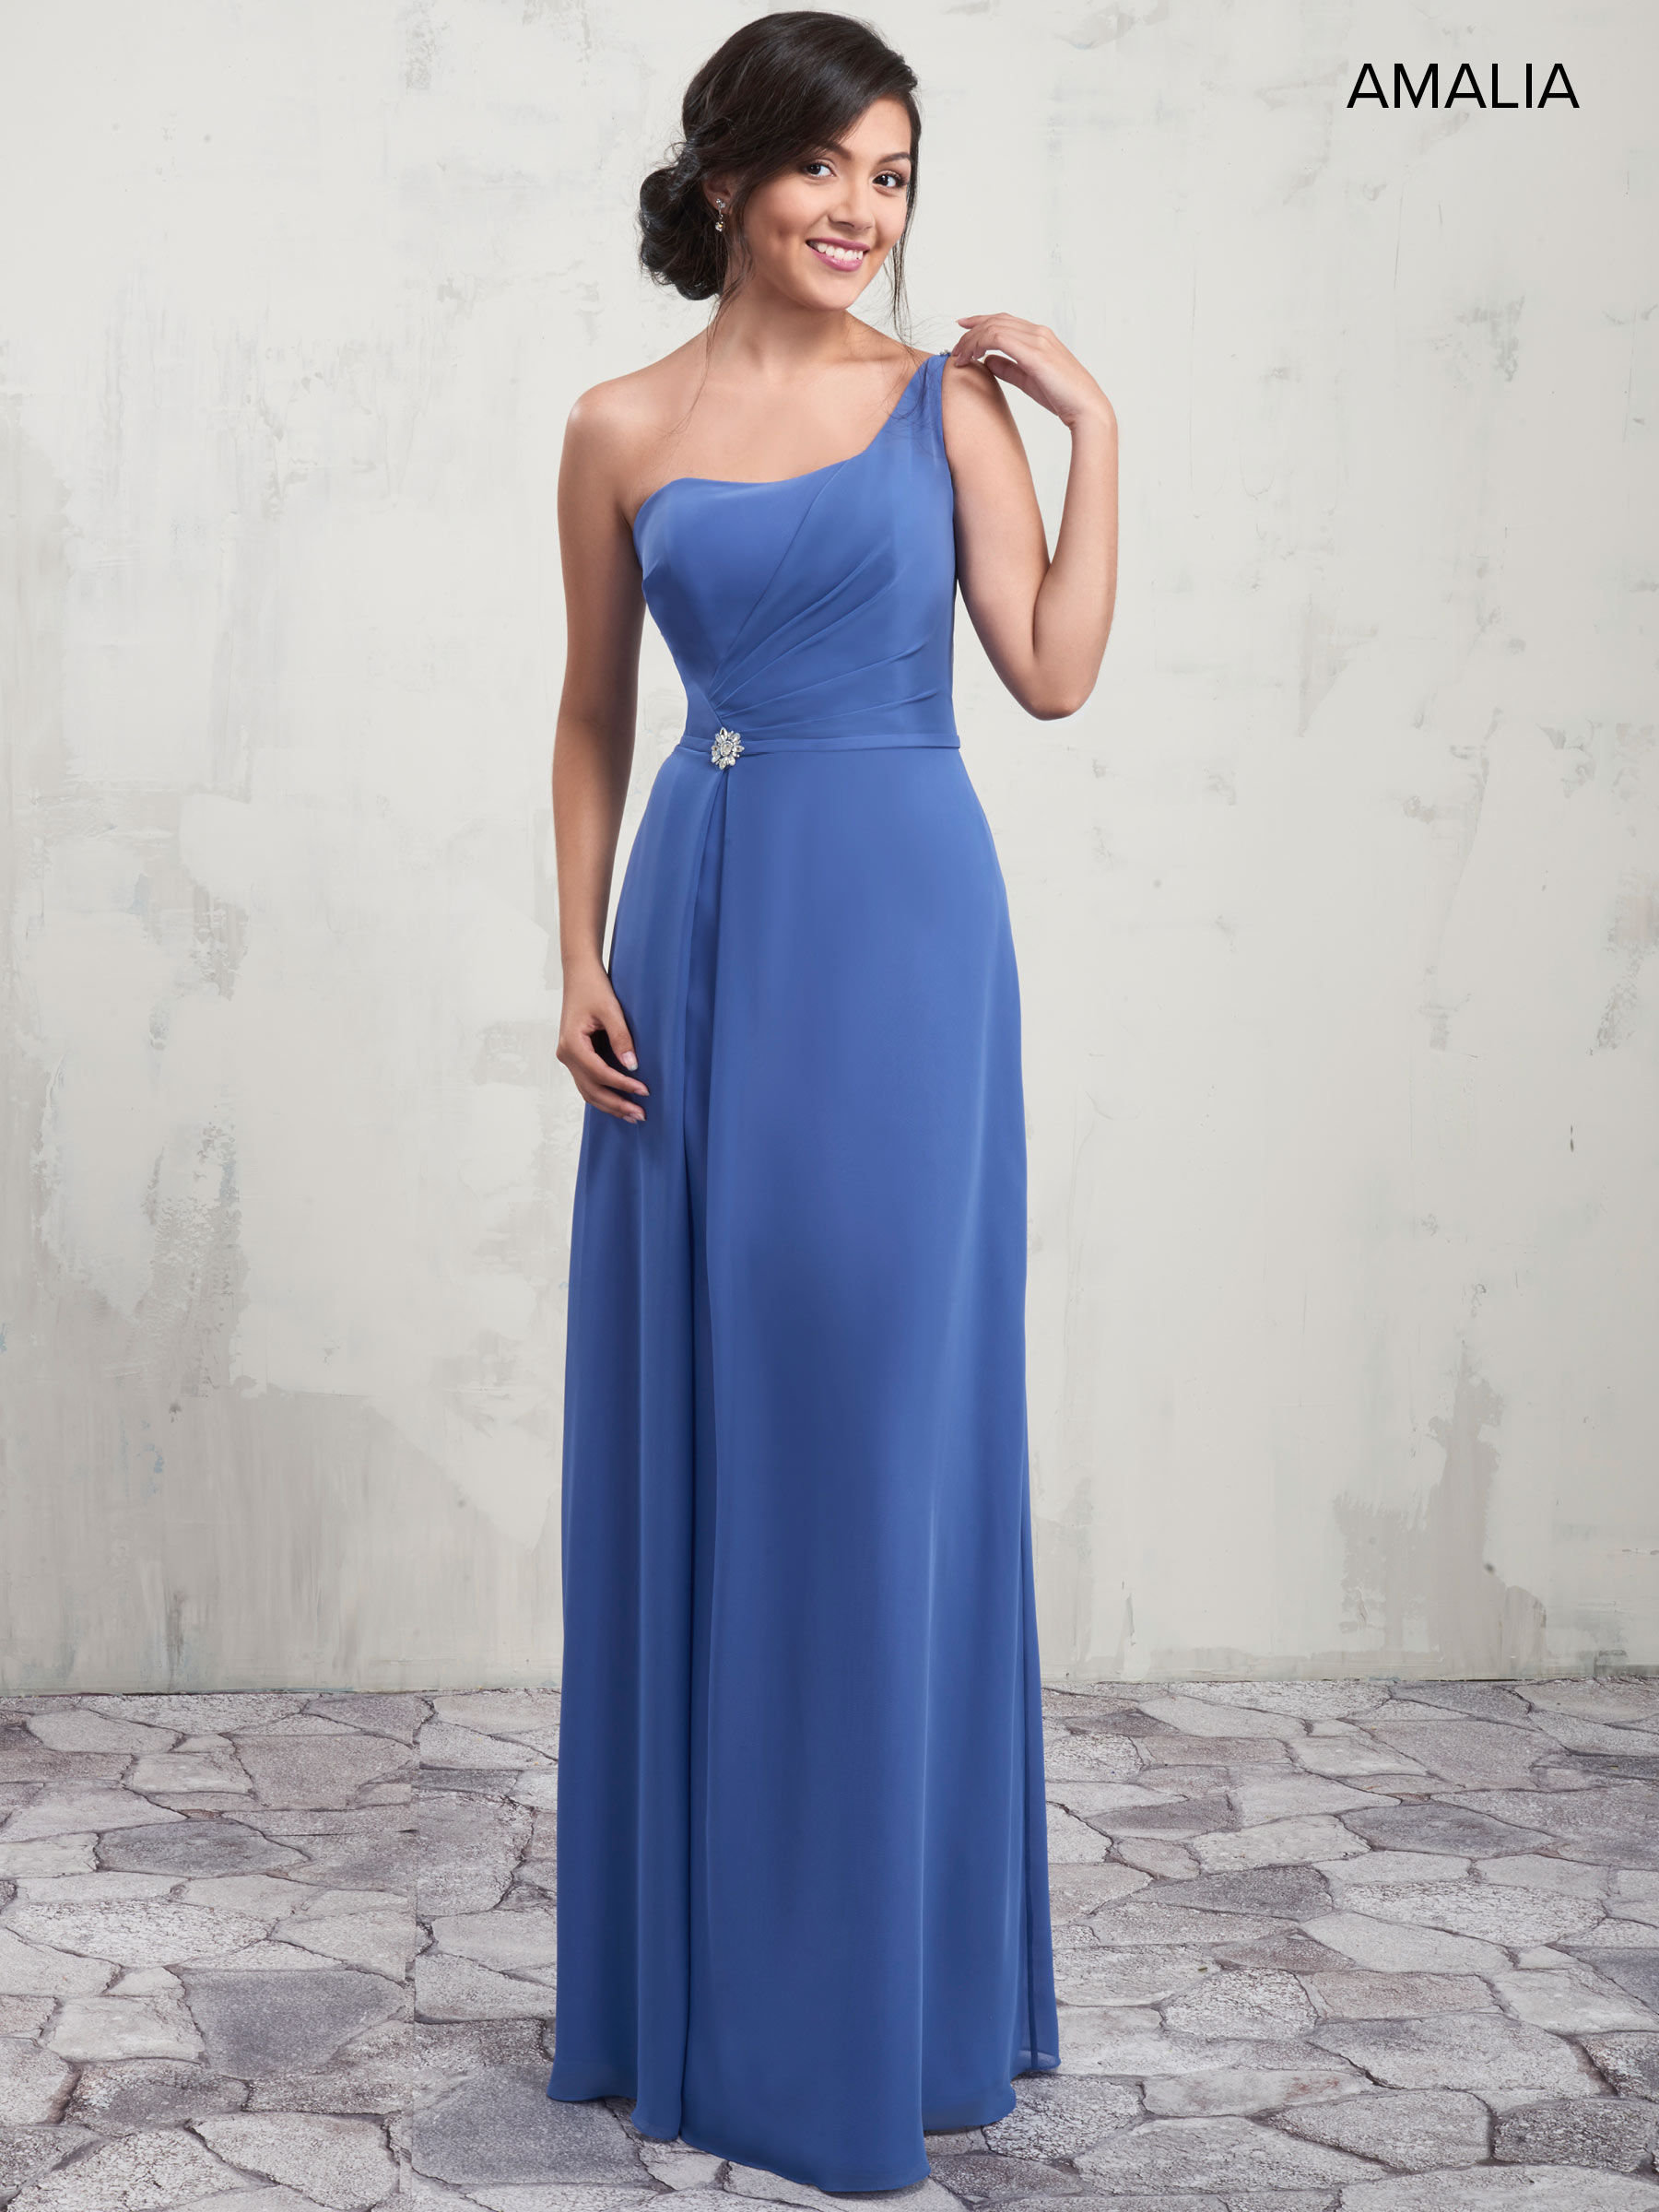 Cornflower Blue Bridesmaid Dresses Sale 52 Off Awi Com